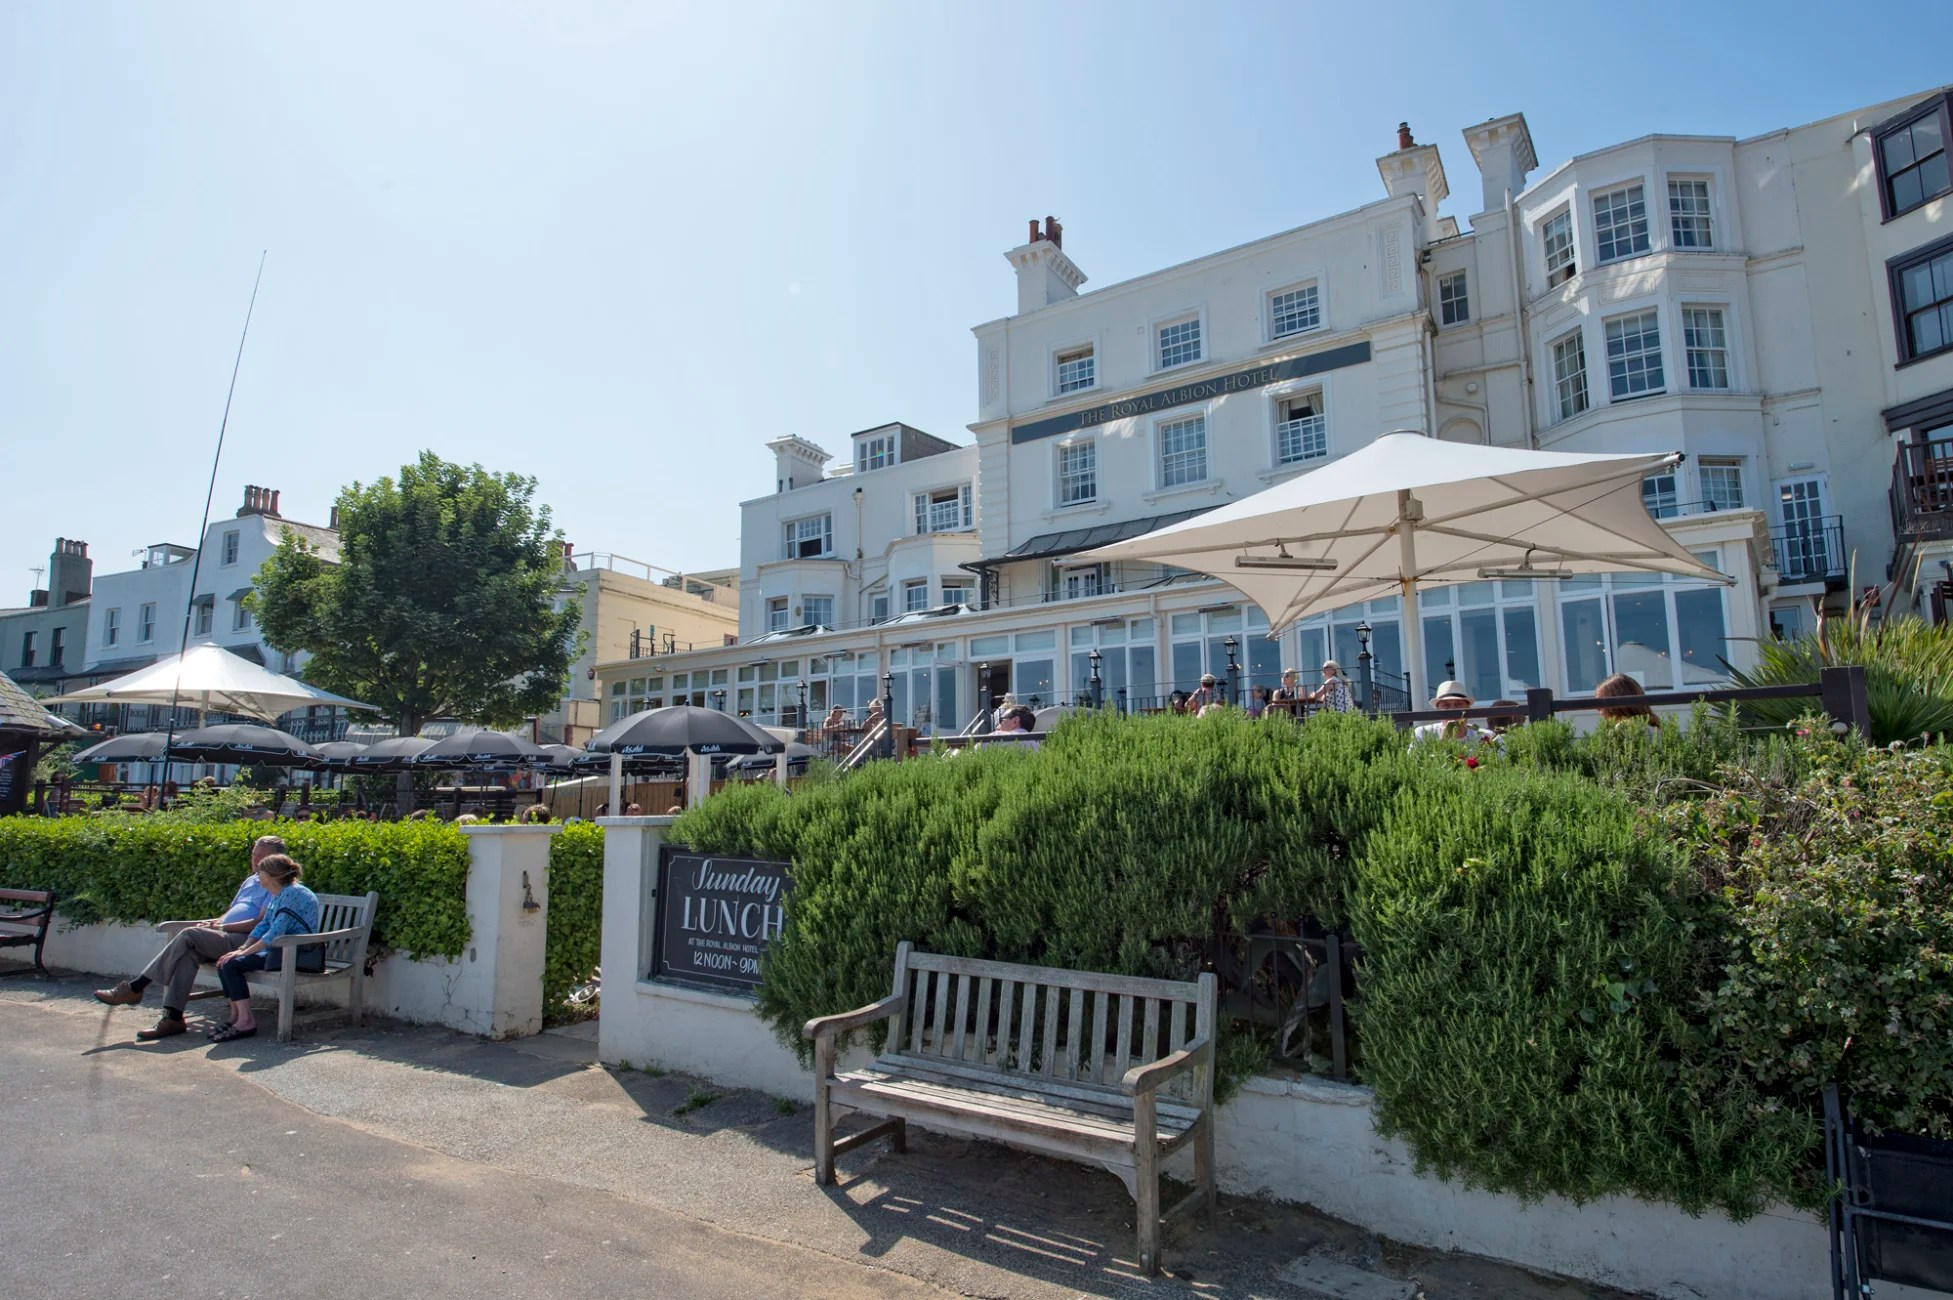 Bed And Breakfast Broadstairs Hotel Hotel The Royal Albion Broadstairs Trivago Co Uk